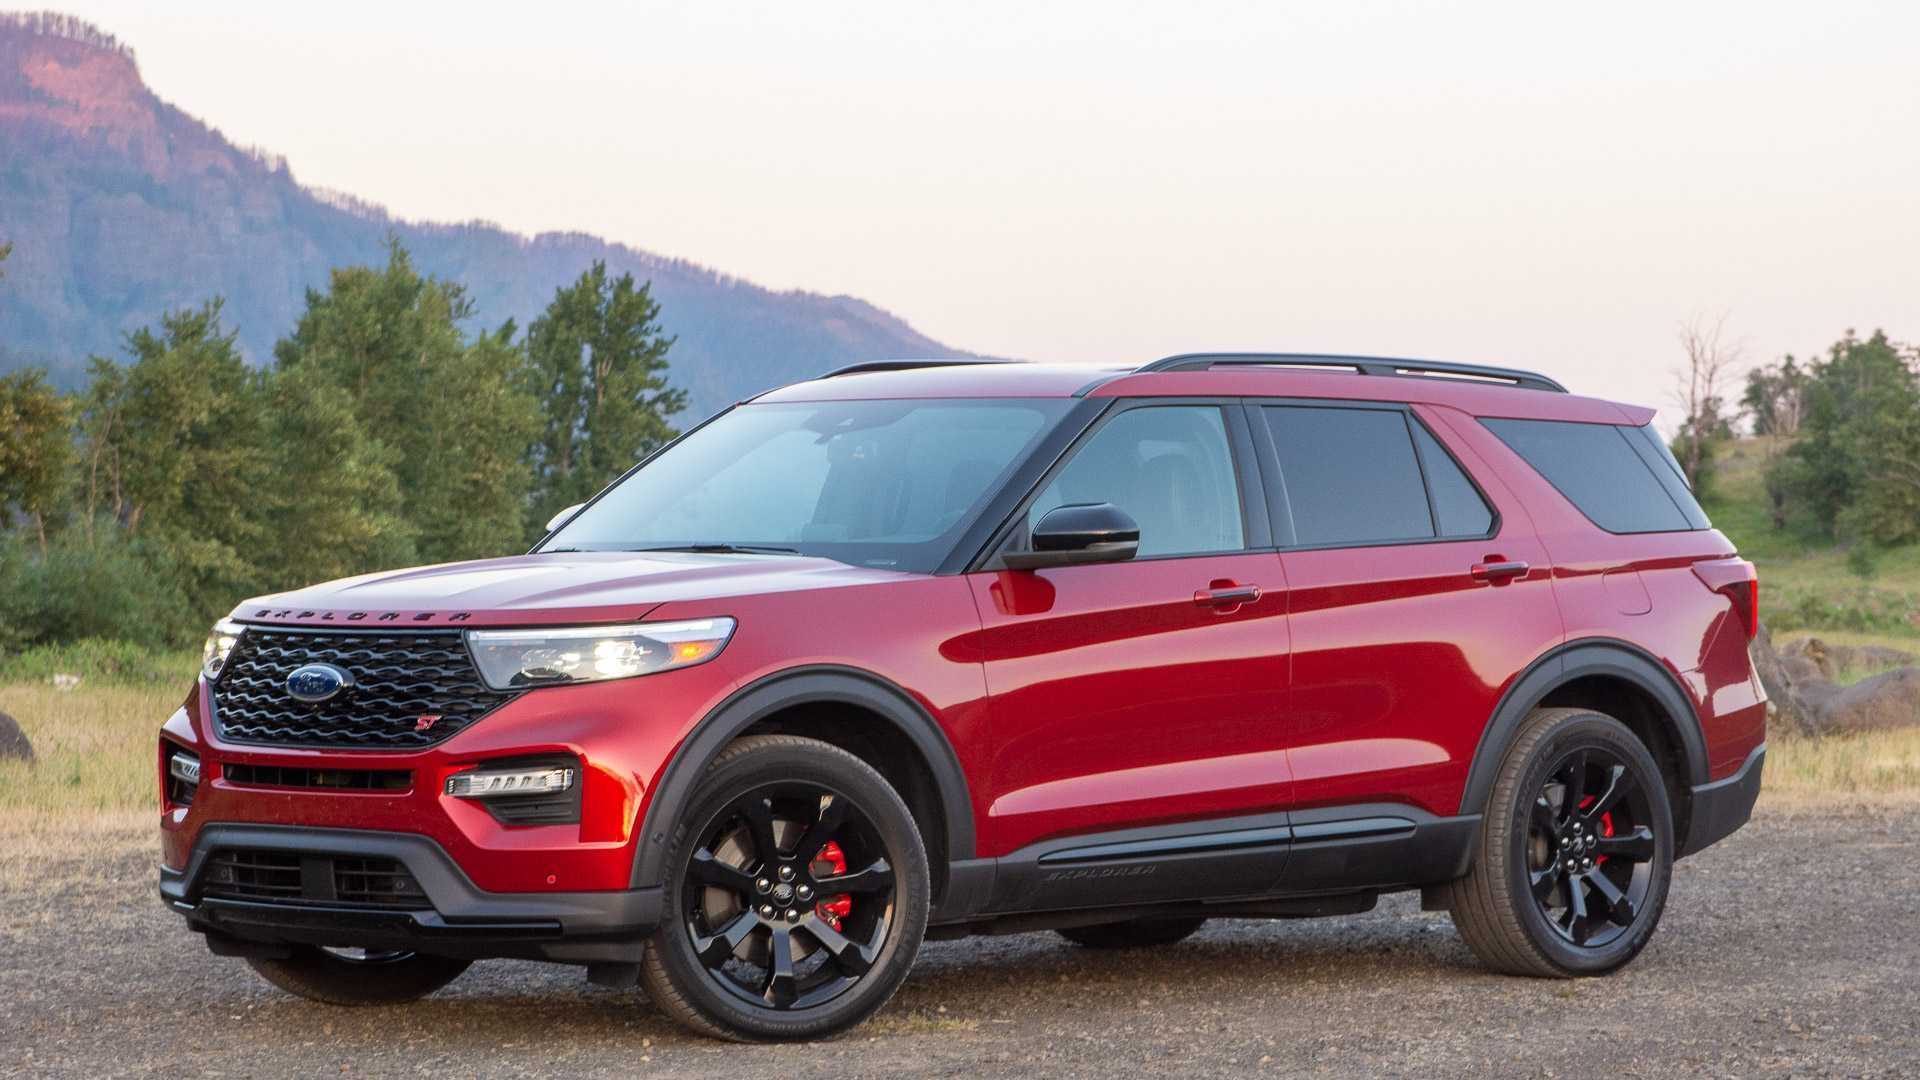 2021 The Ford Explorer Price and Review